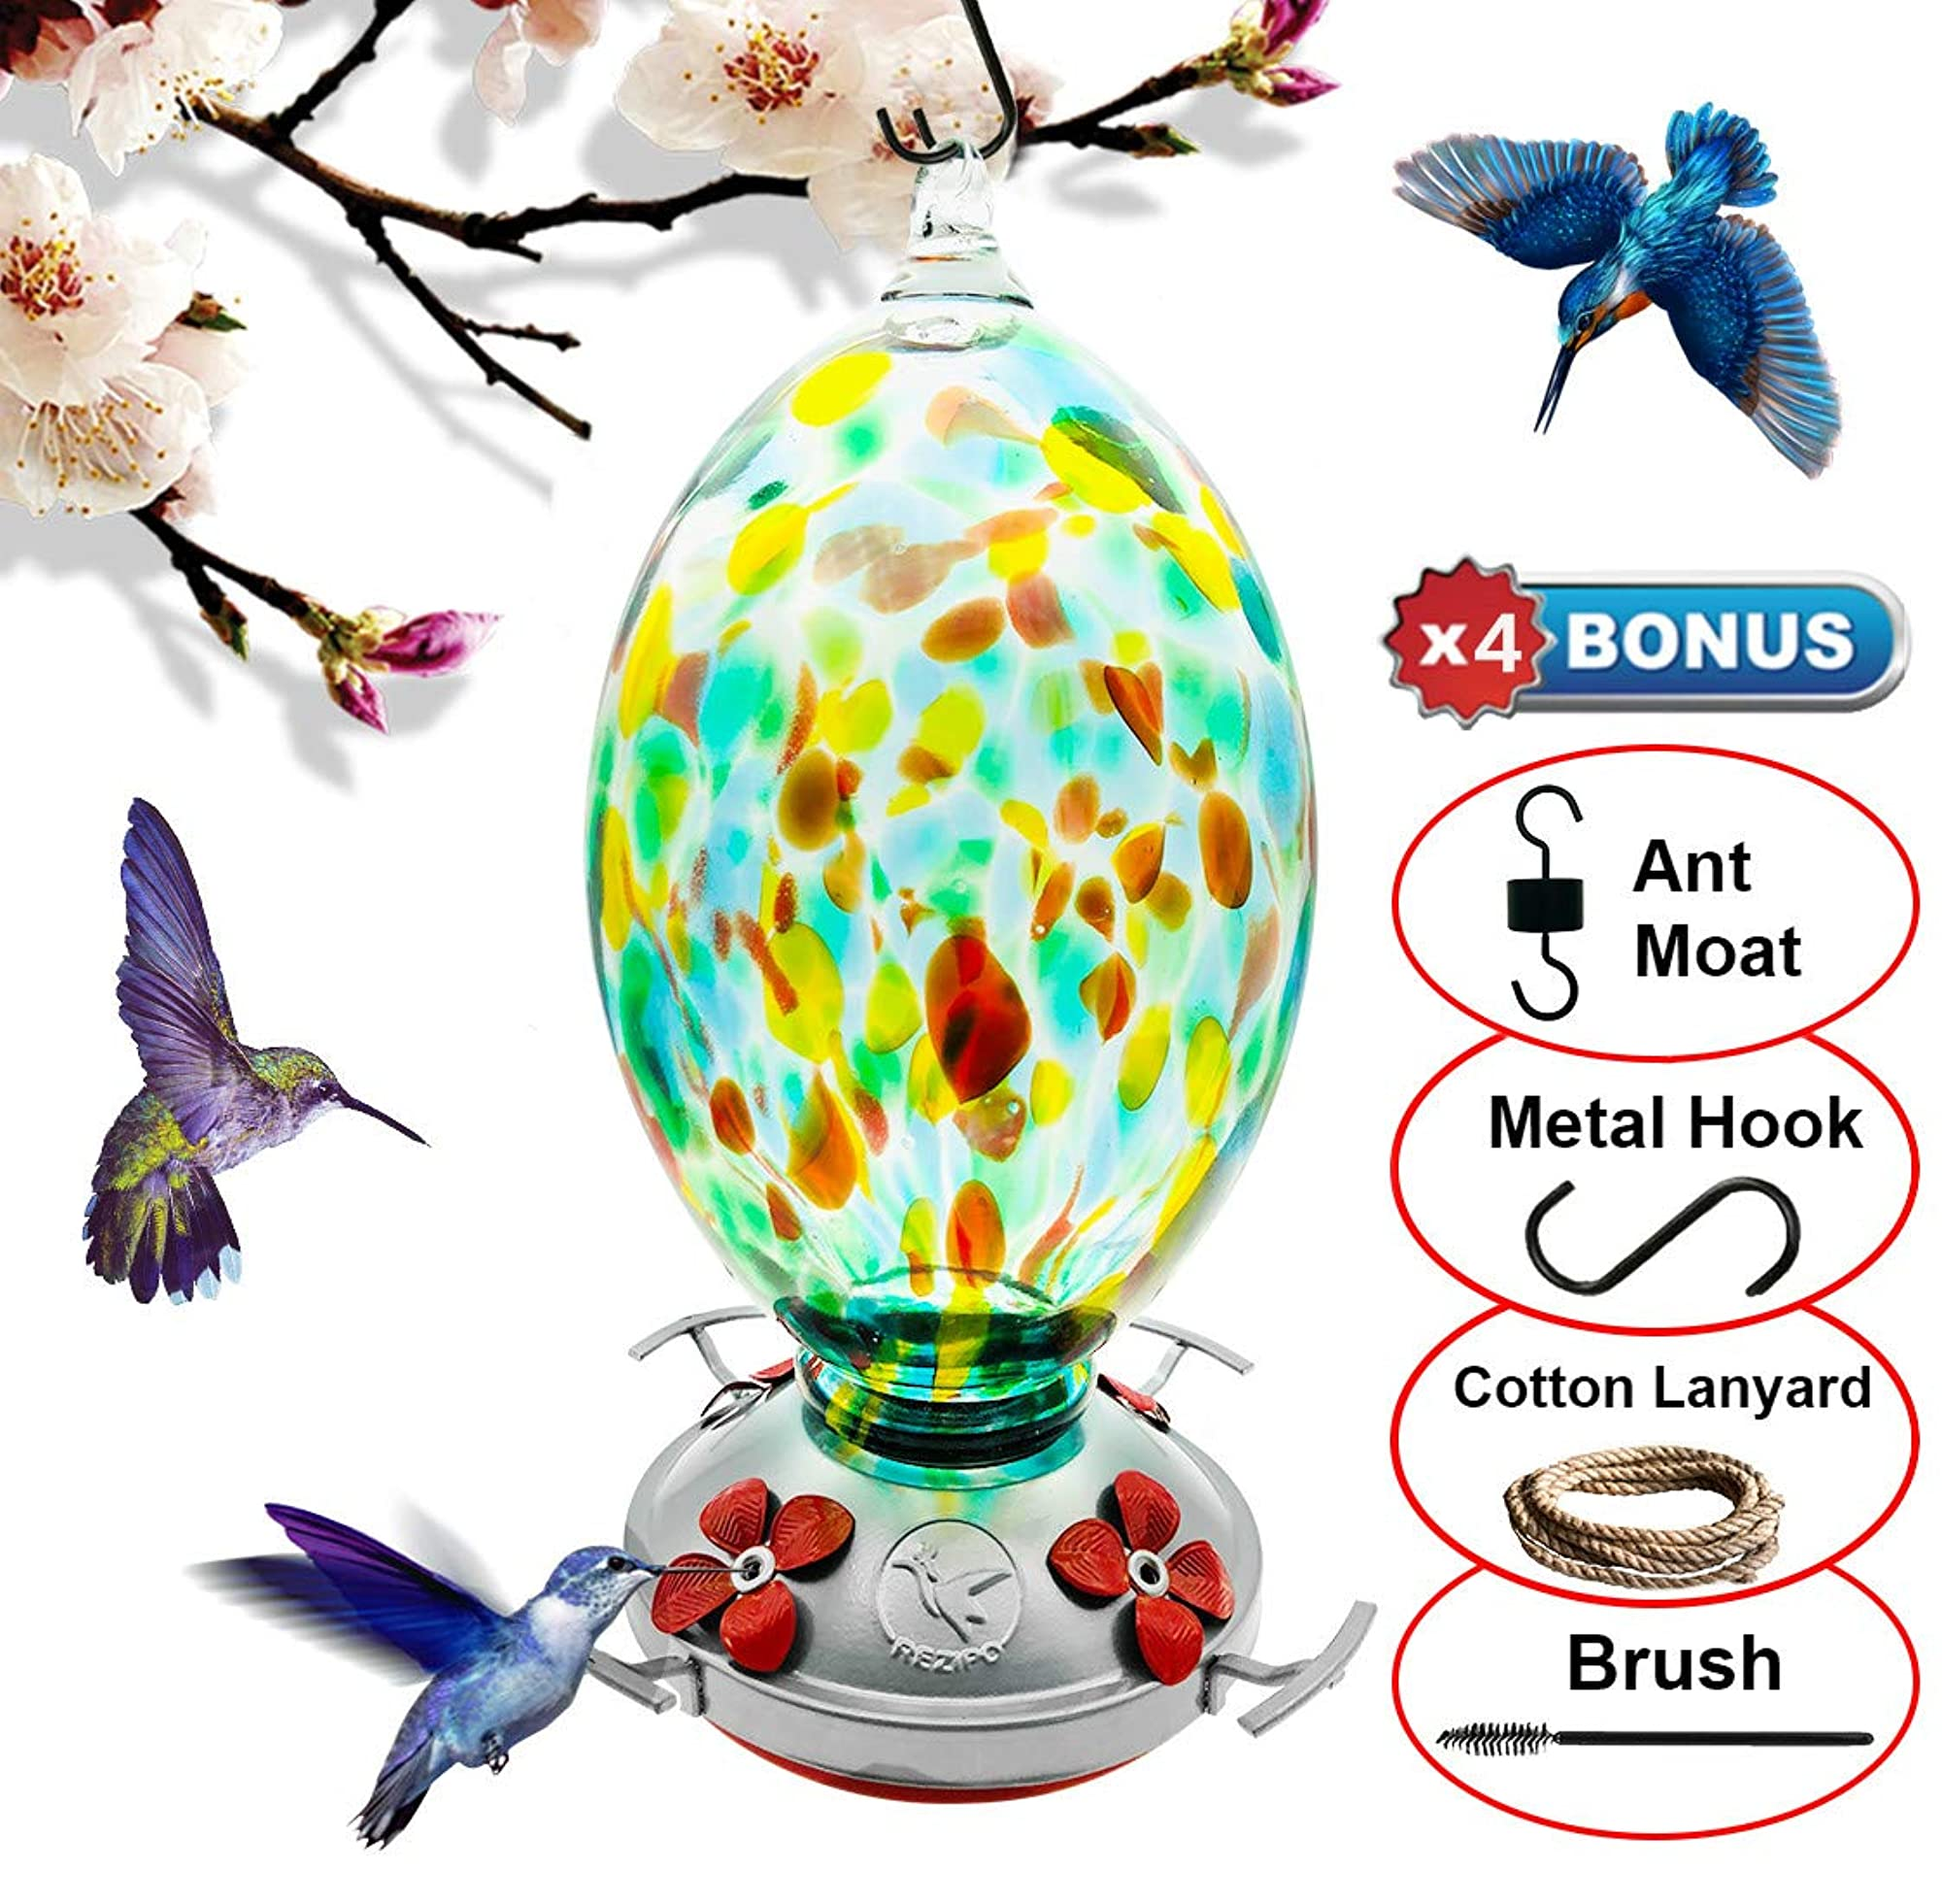 Hummingbird Feeder With Wires And Hooks - Hand Blown Glass - 38 Ounces